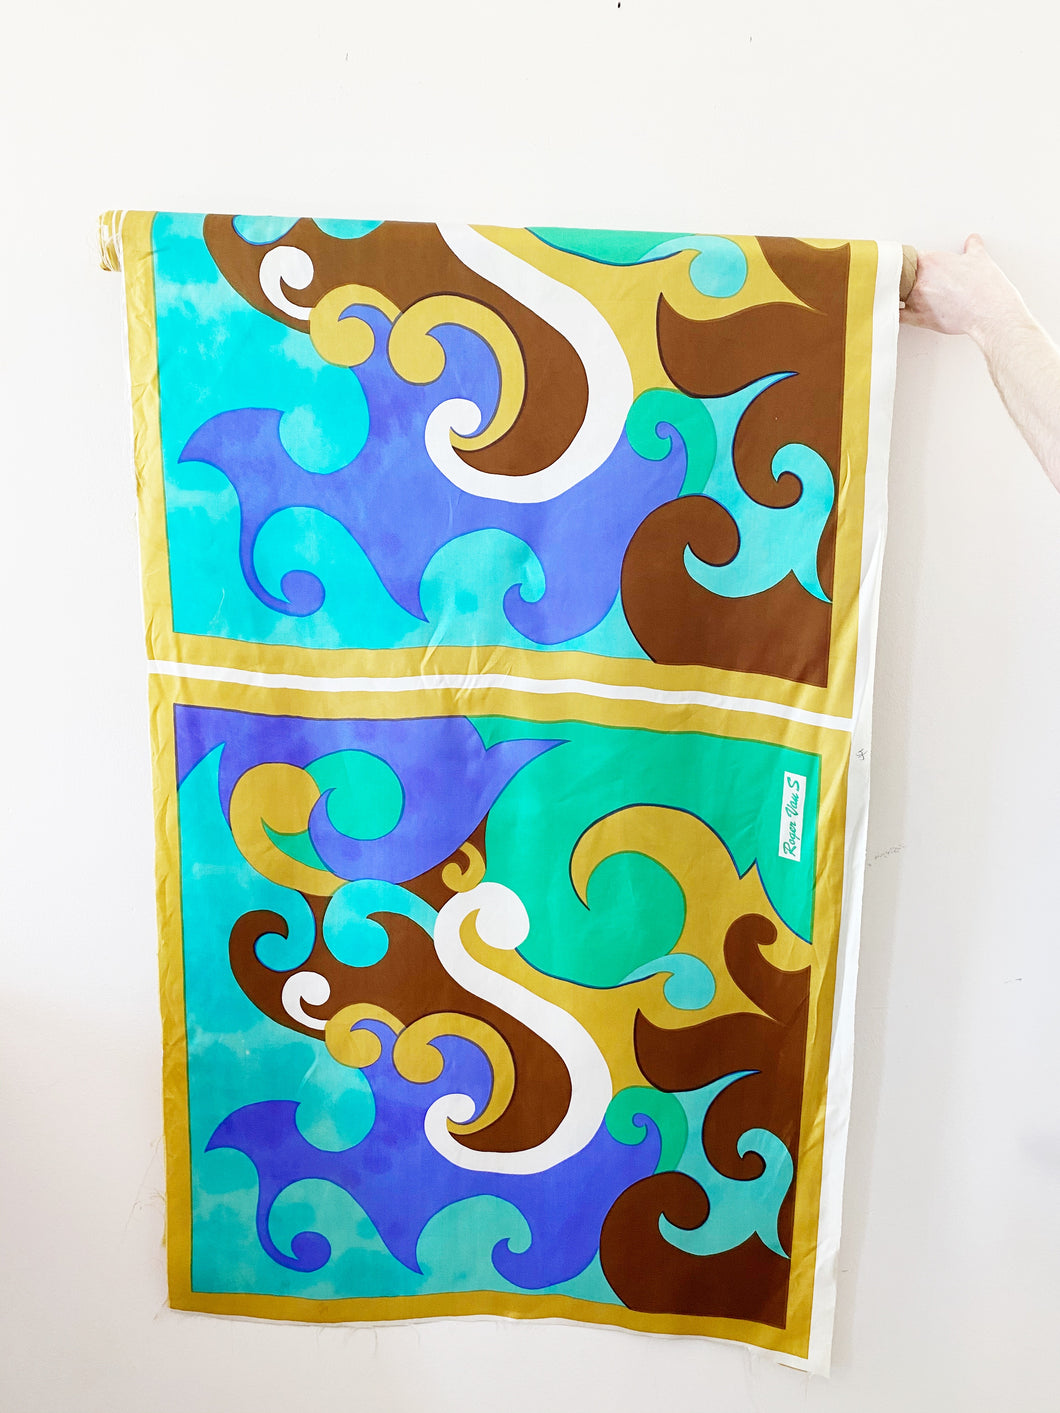 Vibrant blue MCM silk scarf panel by Roger Van S